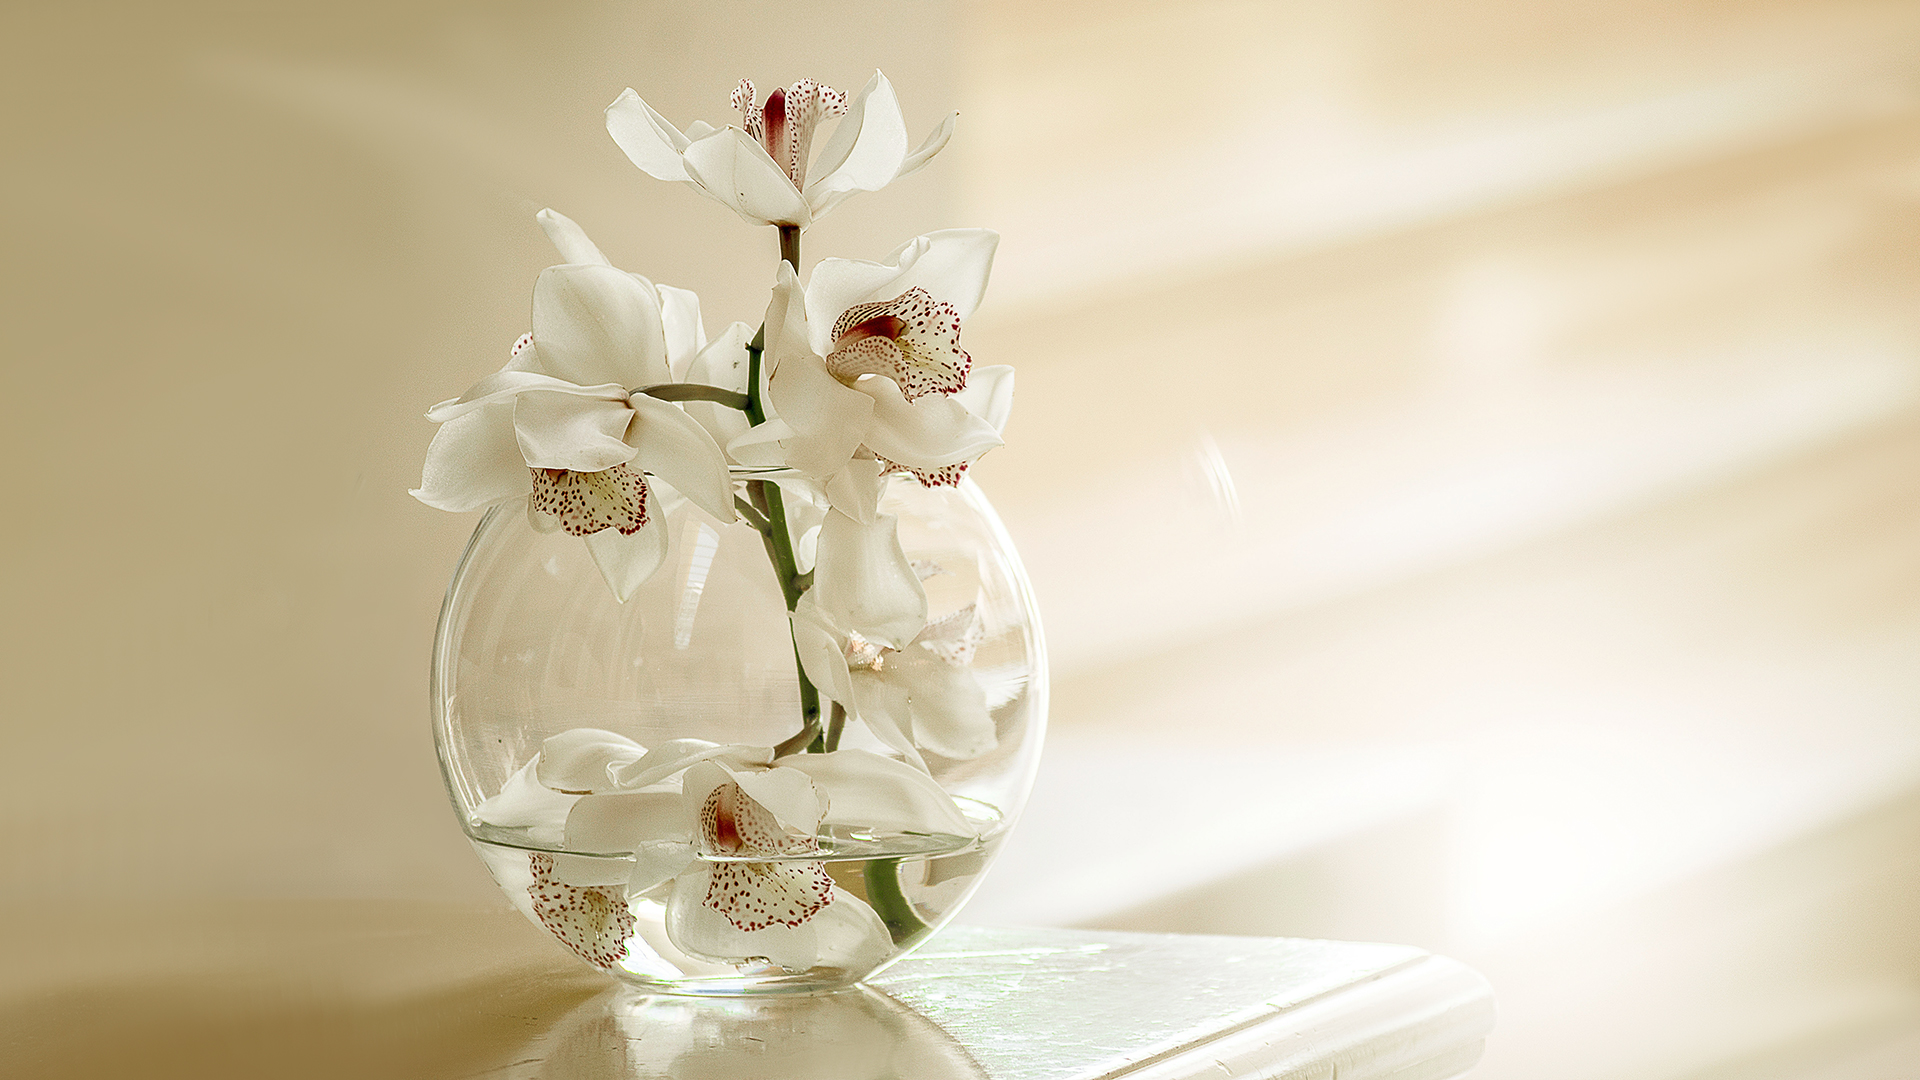 White Orchid Flowers Laptop Background